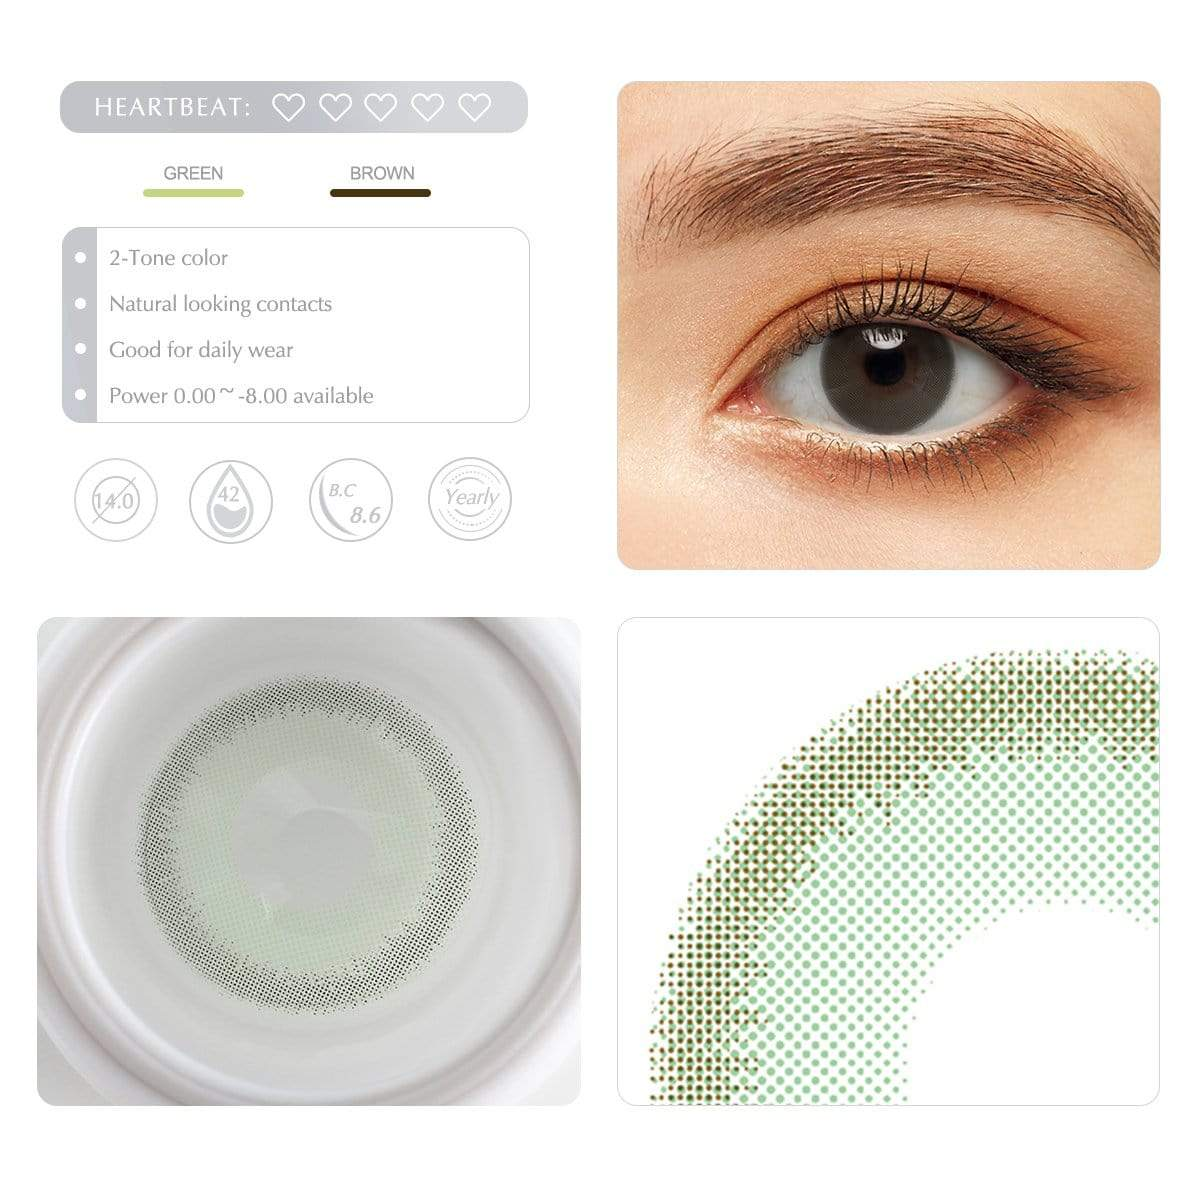 Green contact lens details display renderings